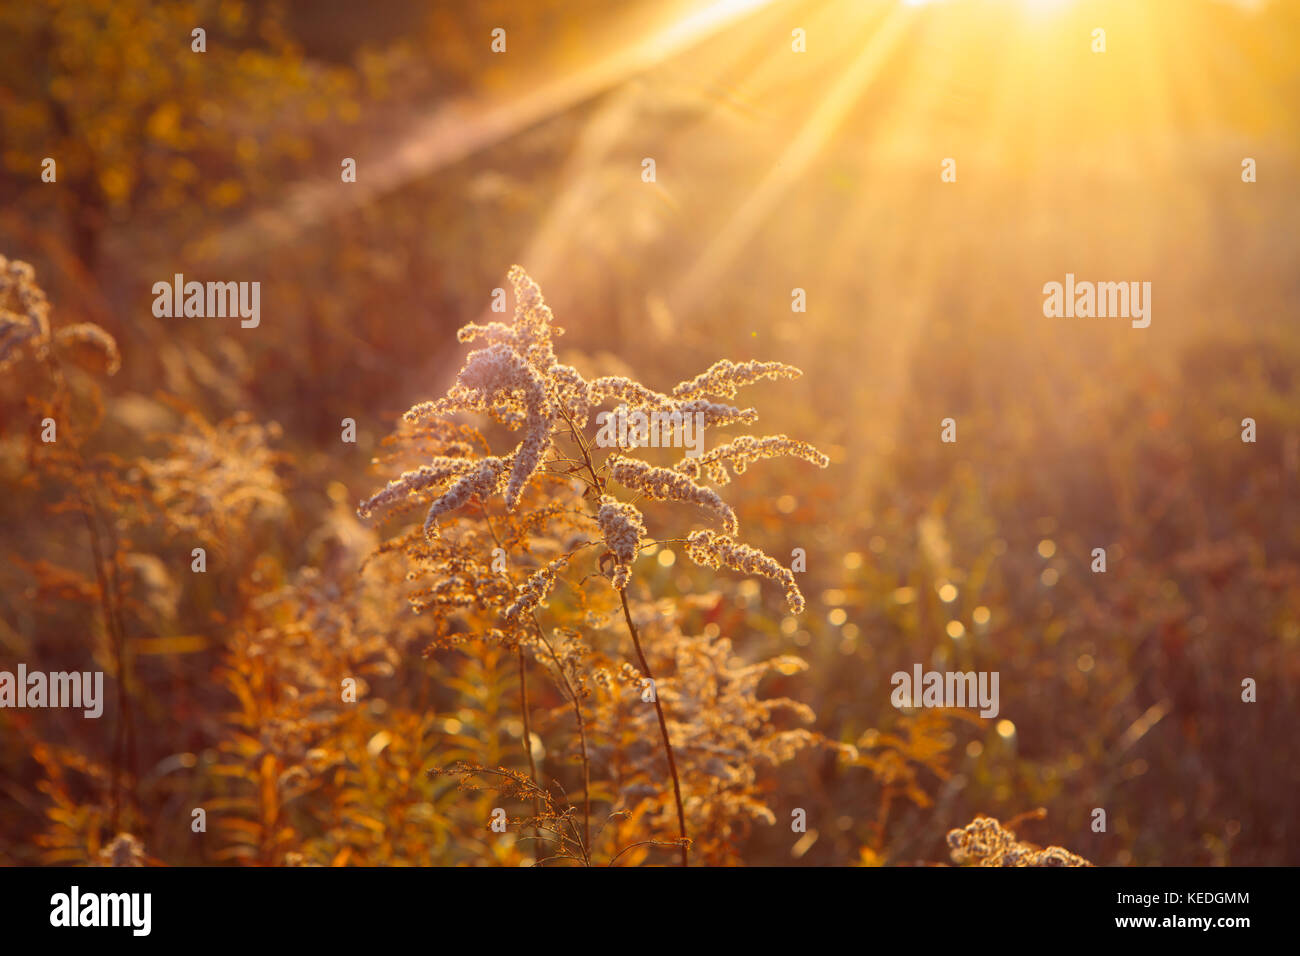 Dry goldenrods in  the evening sun in autumn - Stock Image